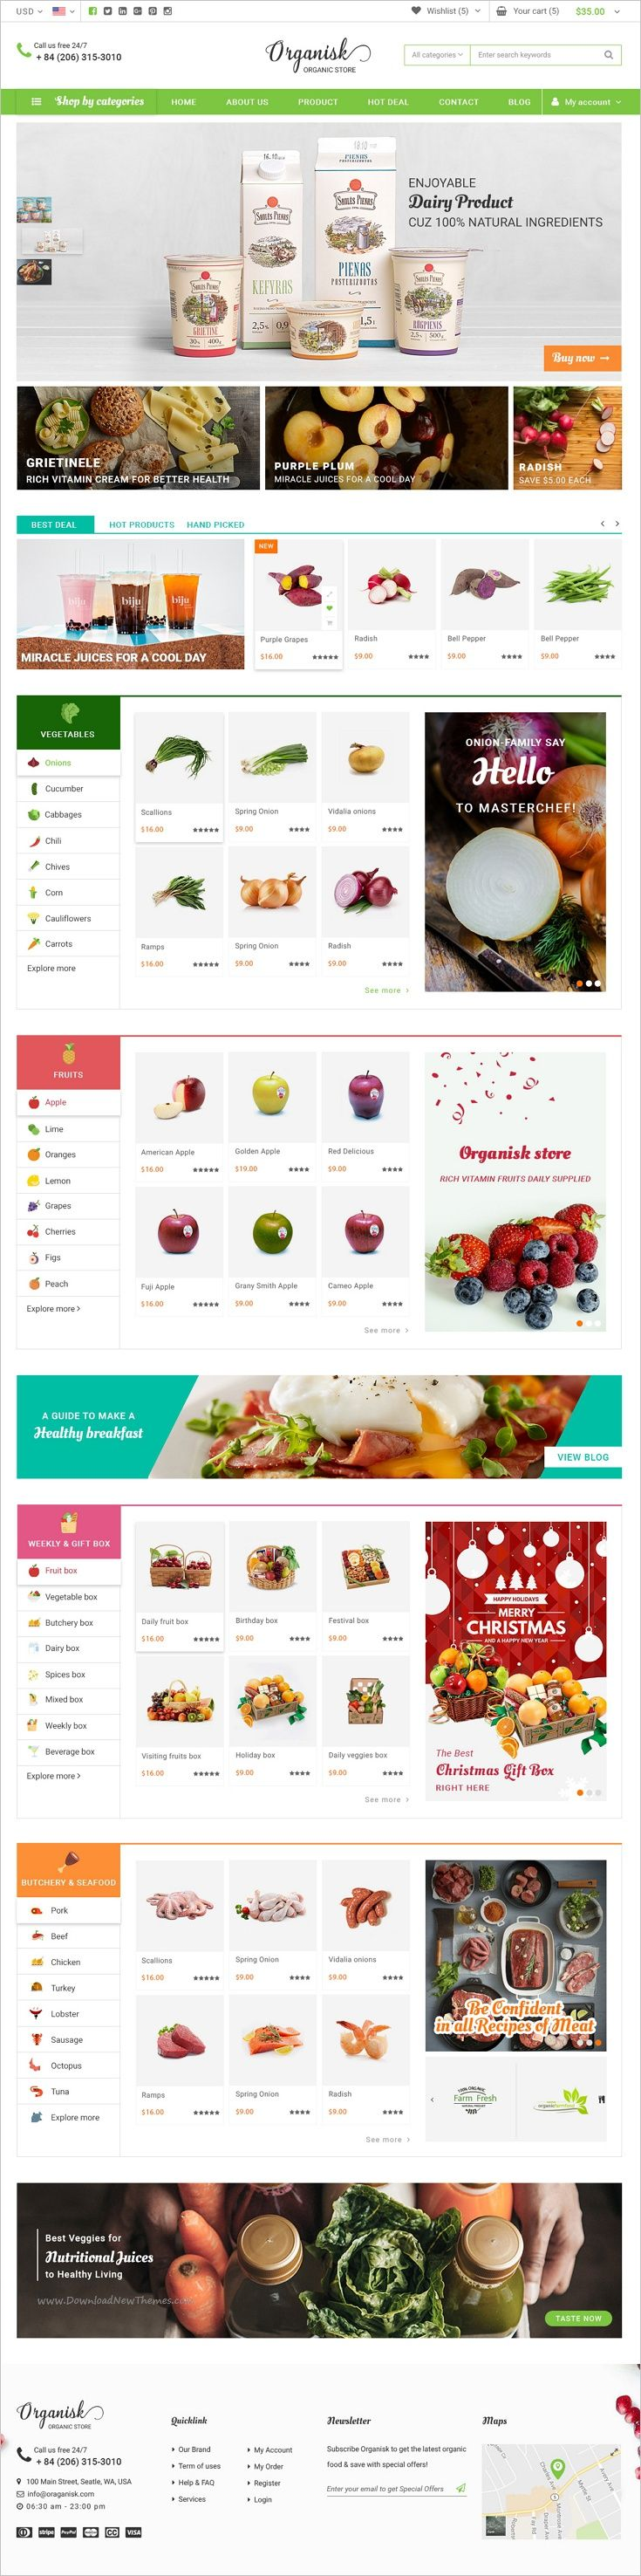 Organic is a fresh and clean design premium #PSD #theme for #webdesign organic shop #eCommerce website with 6 unique homepage versions and 17 fully layered PSD files download now➩ https://themeforest.net/item/organisk-multipurpose-organic-psd-template/18553275?ref=Datasata